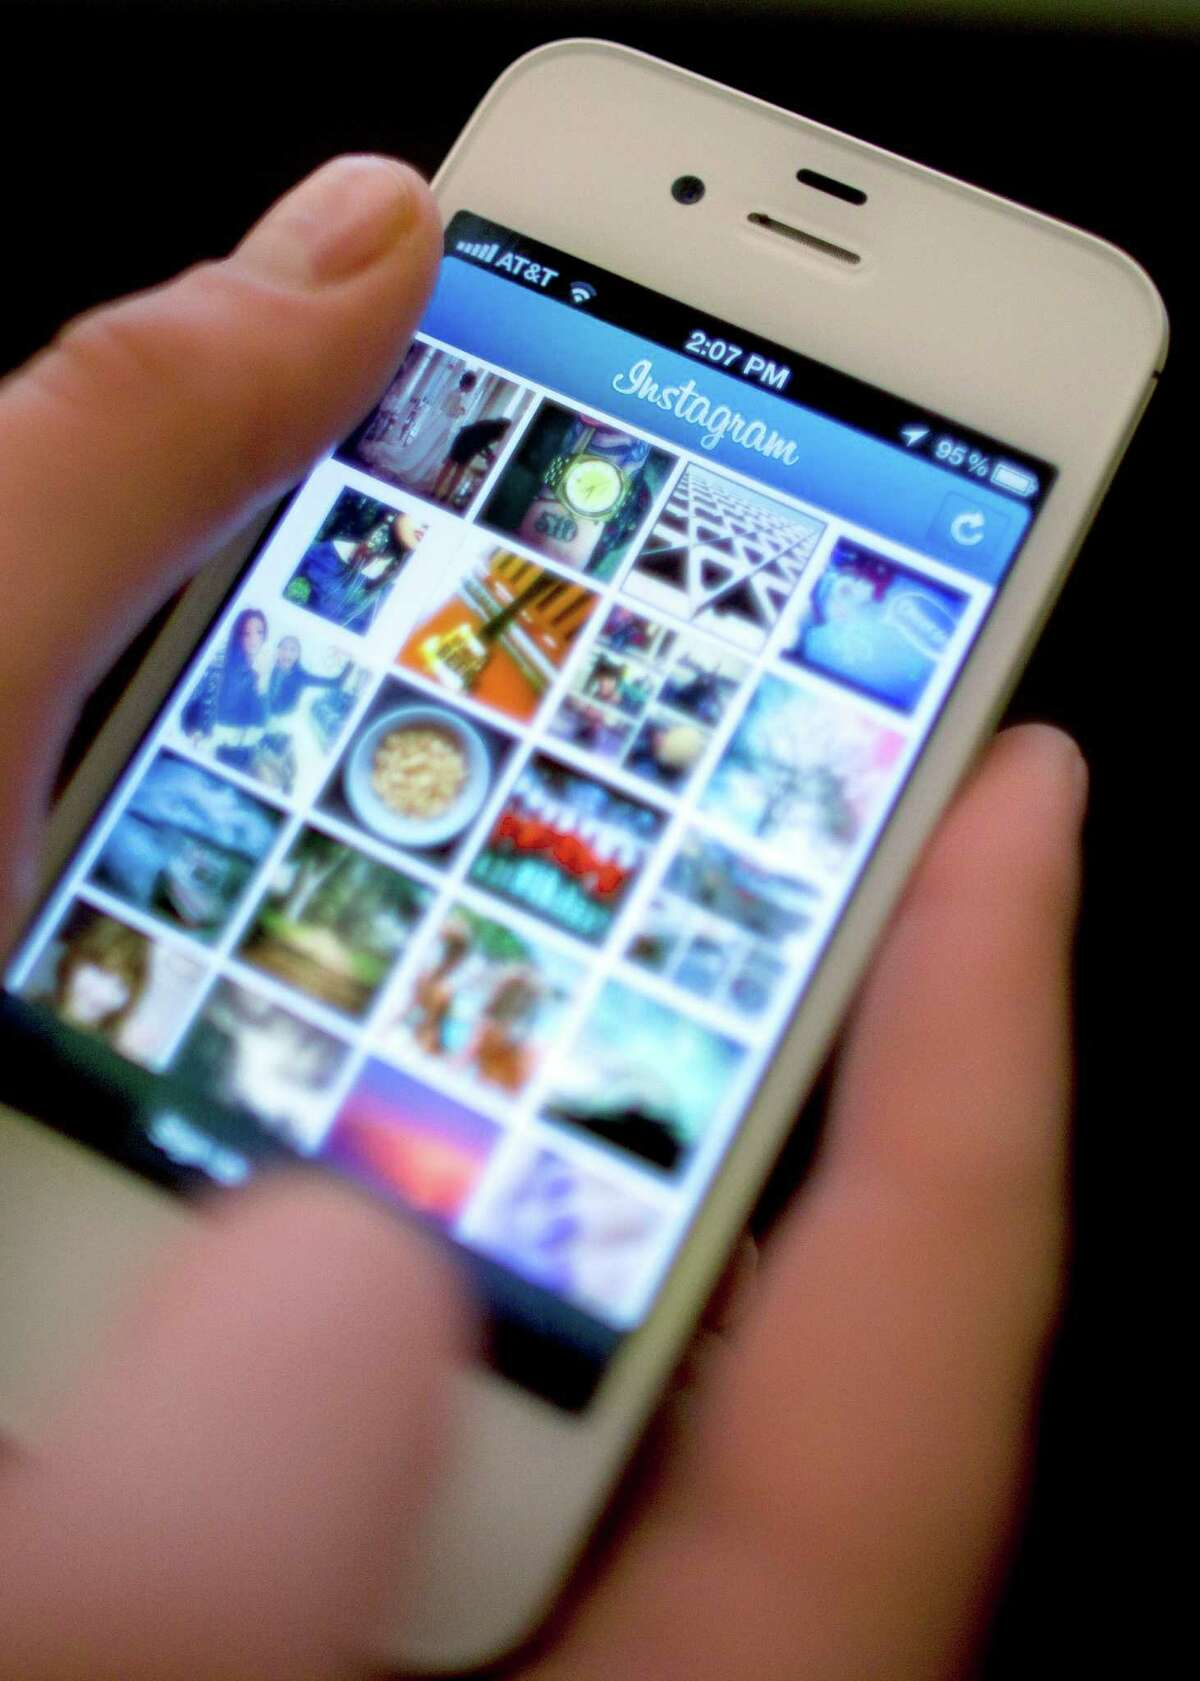 Instagram lets people apply filters to photos they snap with their mobile devices and share them with friends and strangers. Girls with low self-esteem often compare themselves unfavorably to photos they see on social media.